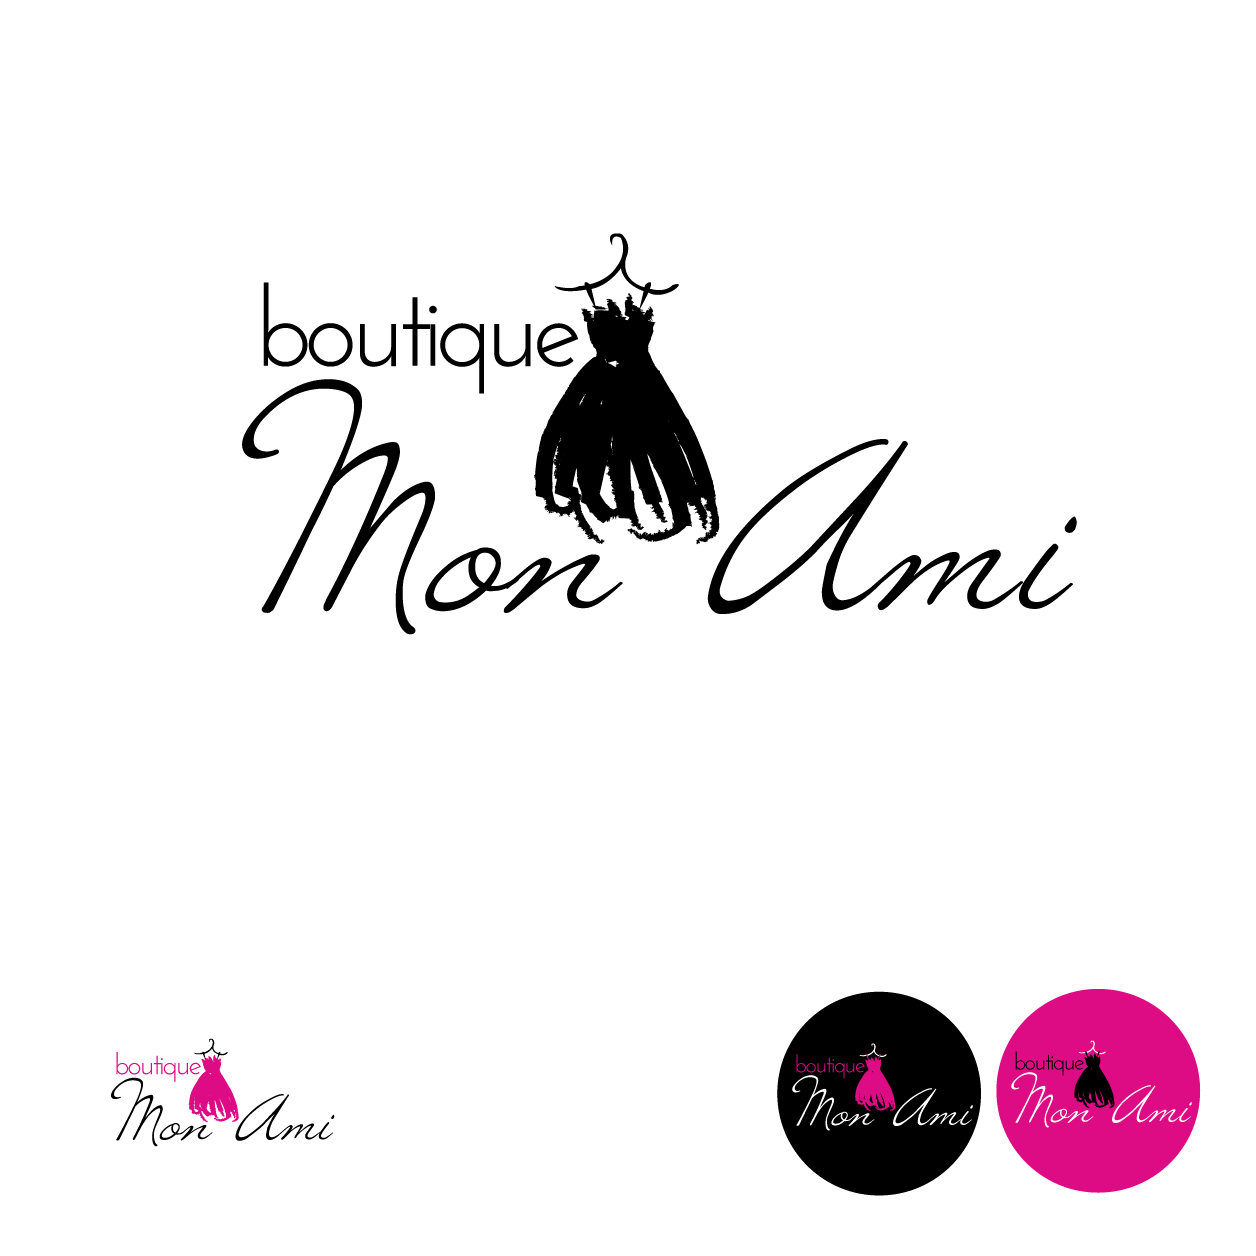 Help Boutique Mon Ami with a new logo